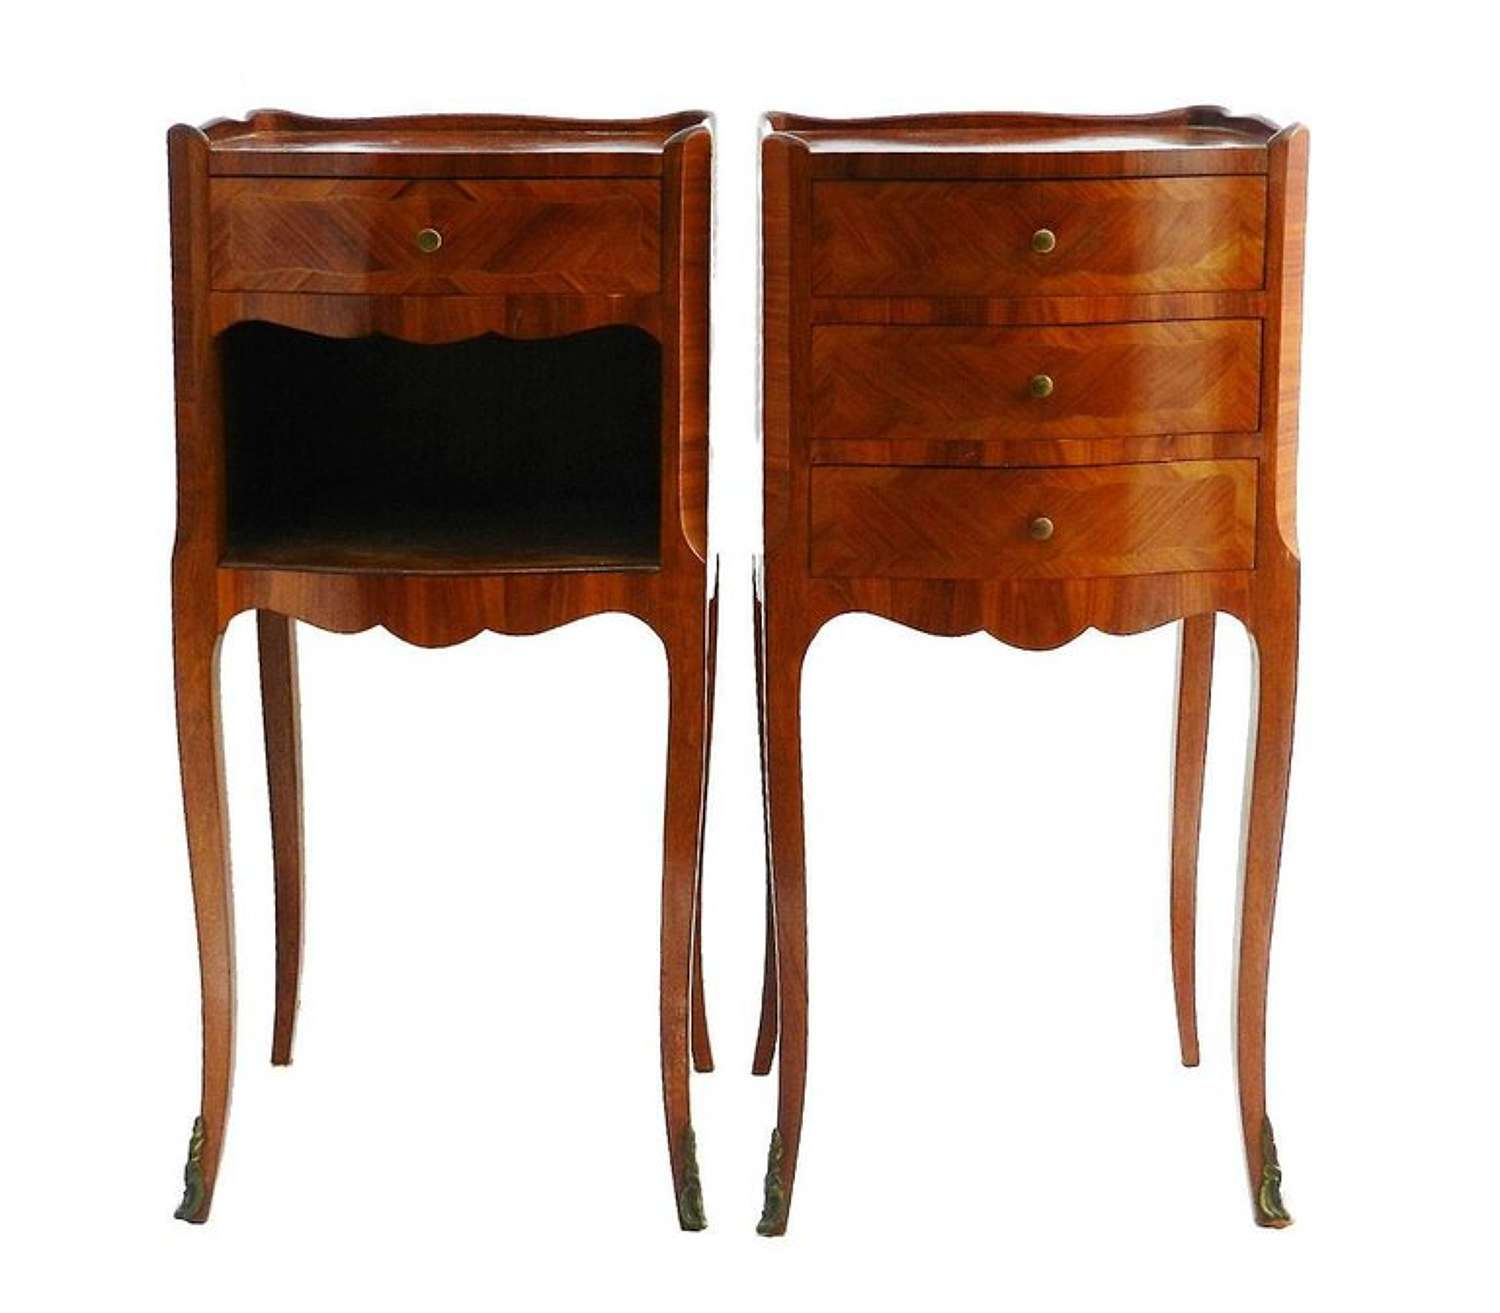 Pair Nightstands Bedside Tables Cabinets French Louis revival early 20th Century